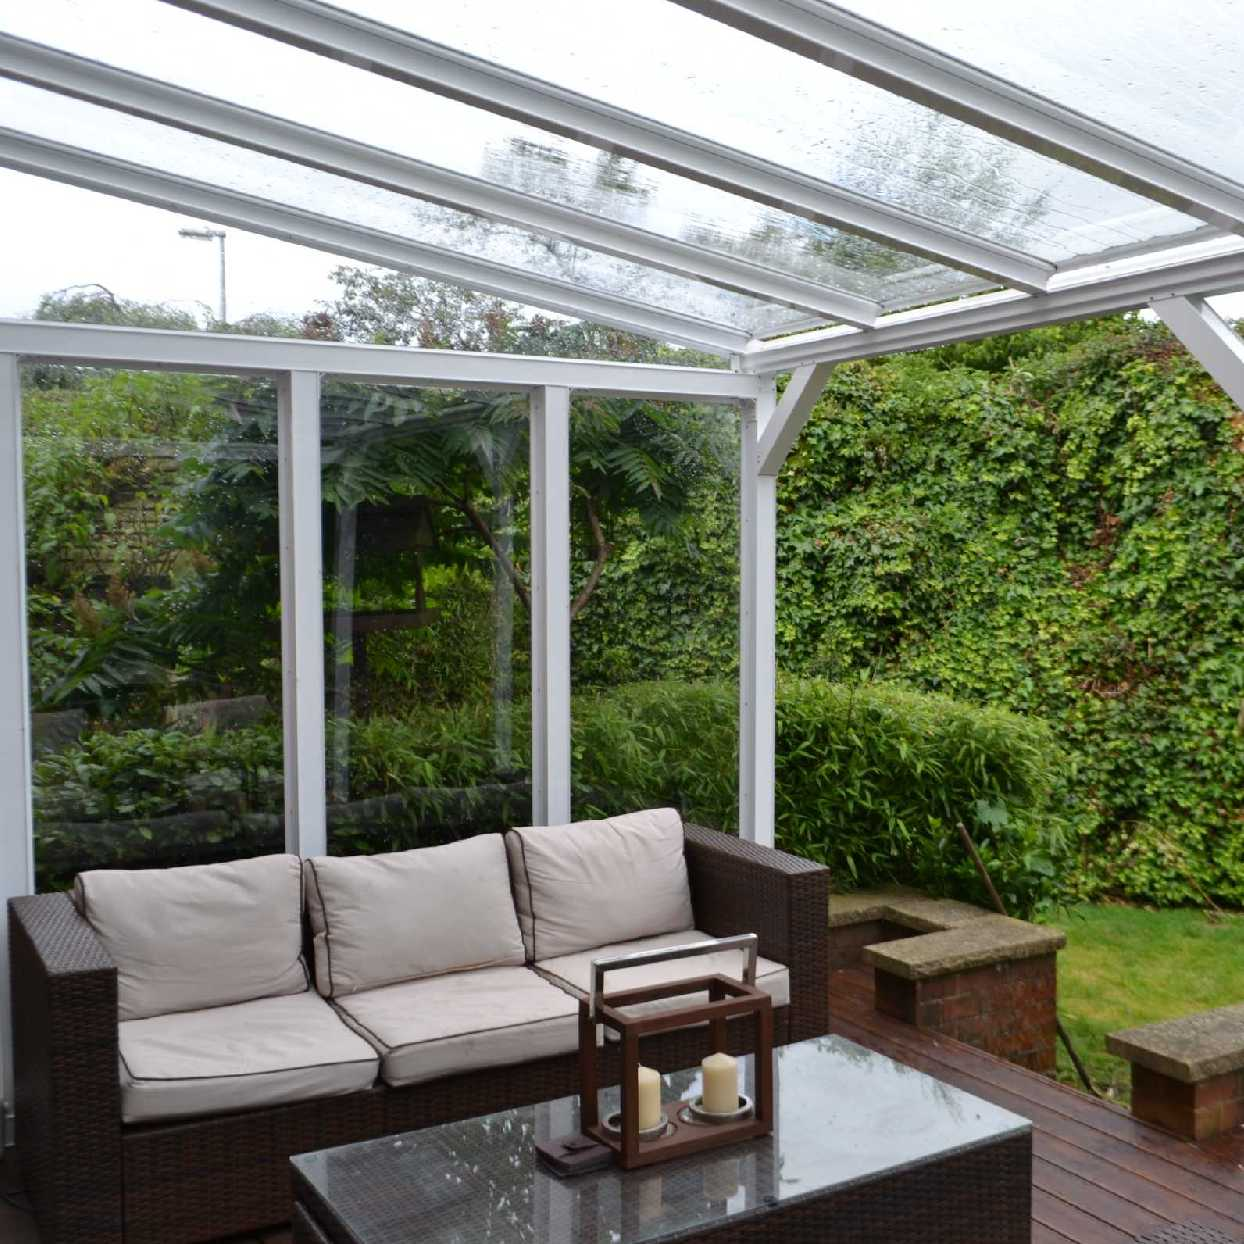 Omega Smart Lean-To Canopy with 6mm Glass Clear Plate Polycarbonate Glazing - 5.2m (W) x 4.0m (P), (3) Supporting Posts